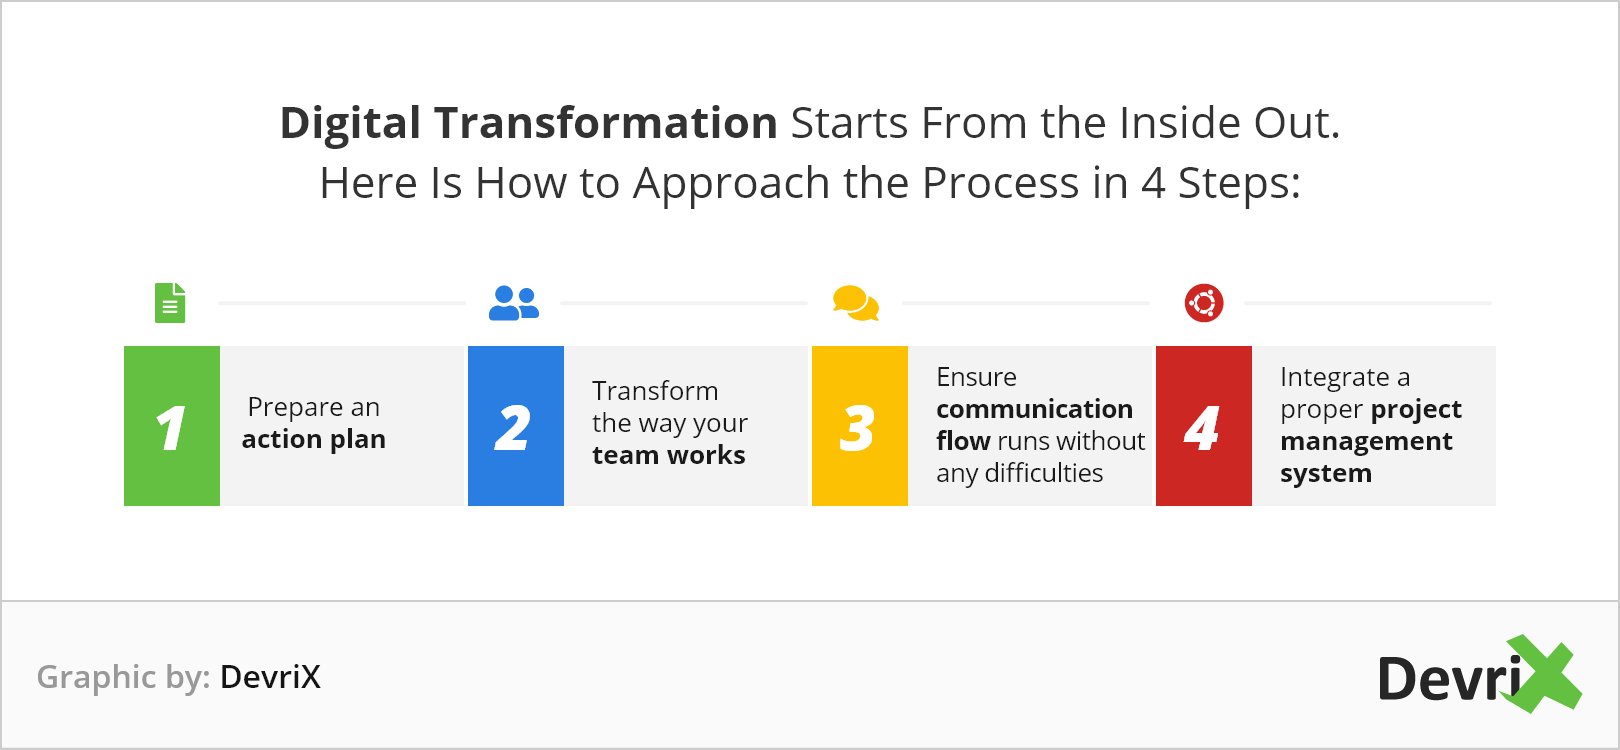 Digital transformation starts from the inside out.